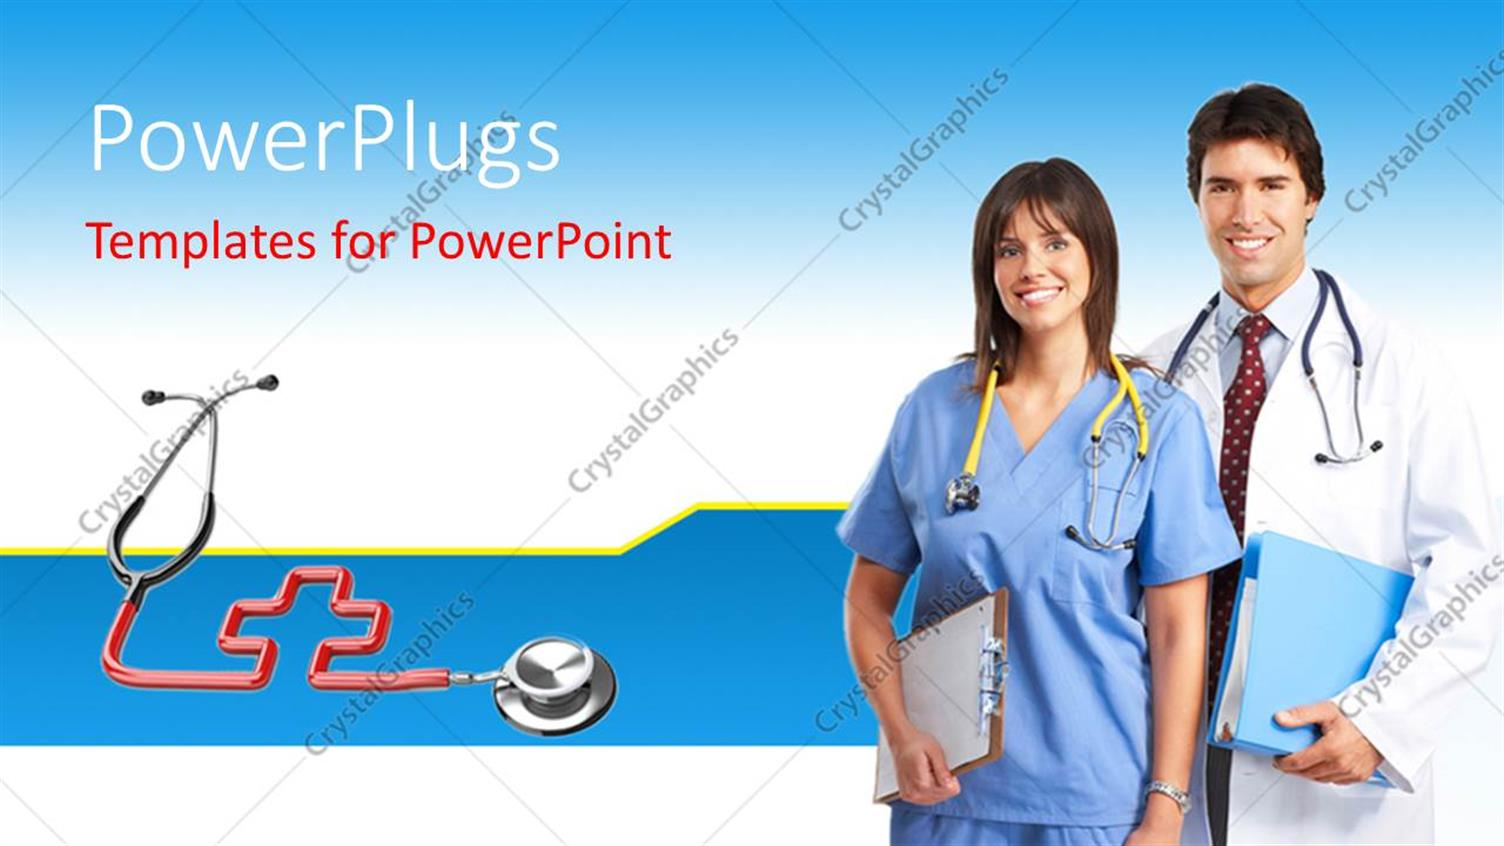 powerpoint template a male and female medical doctor wearing stethoscopes 19992. Black Bedroom Furniture Sets. Home Design Ideas